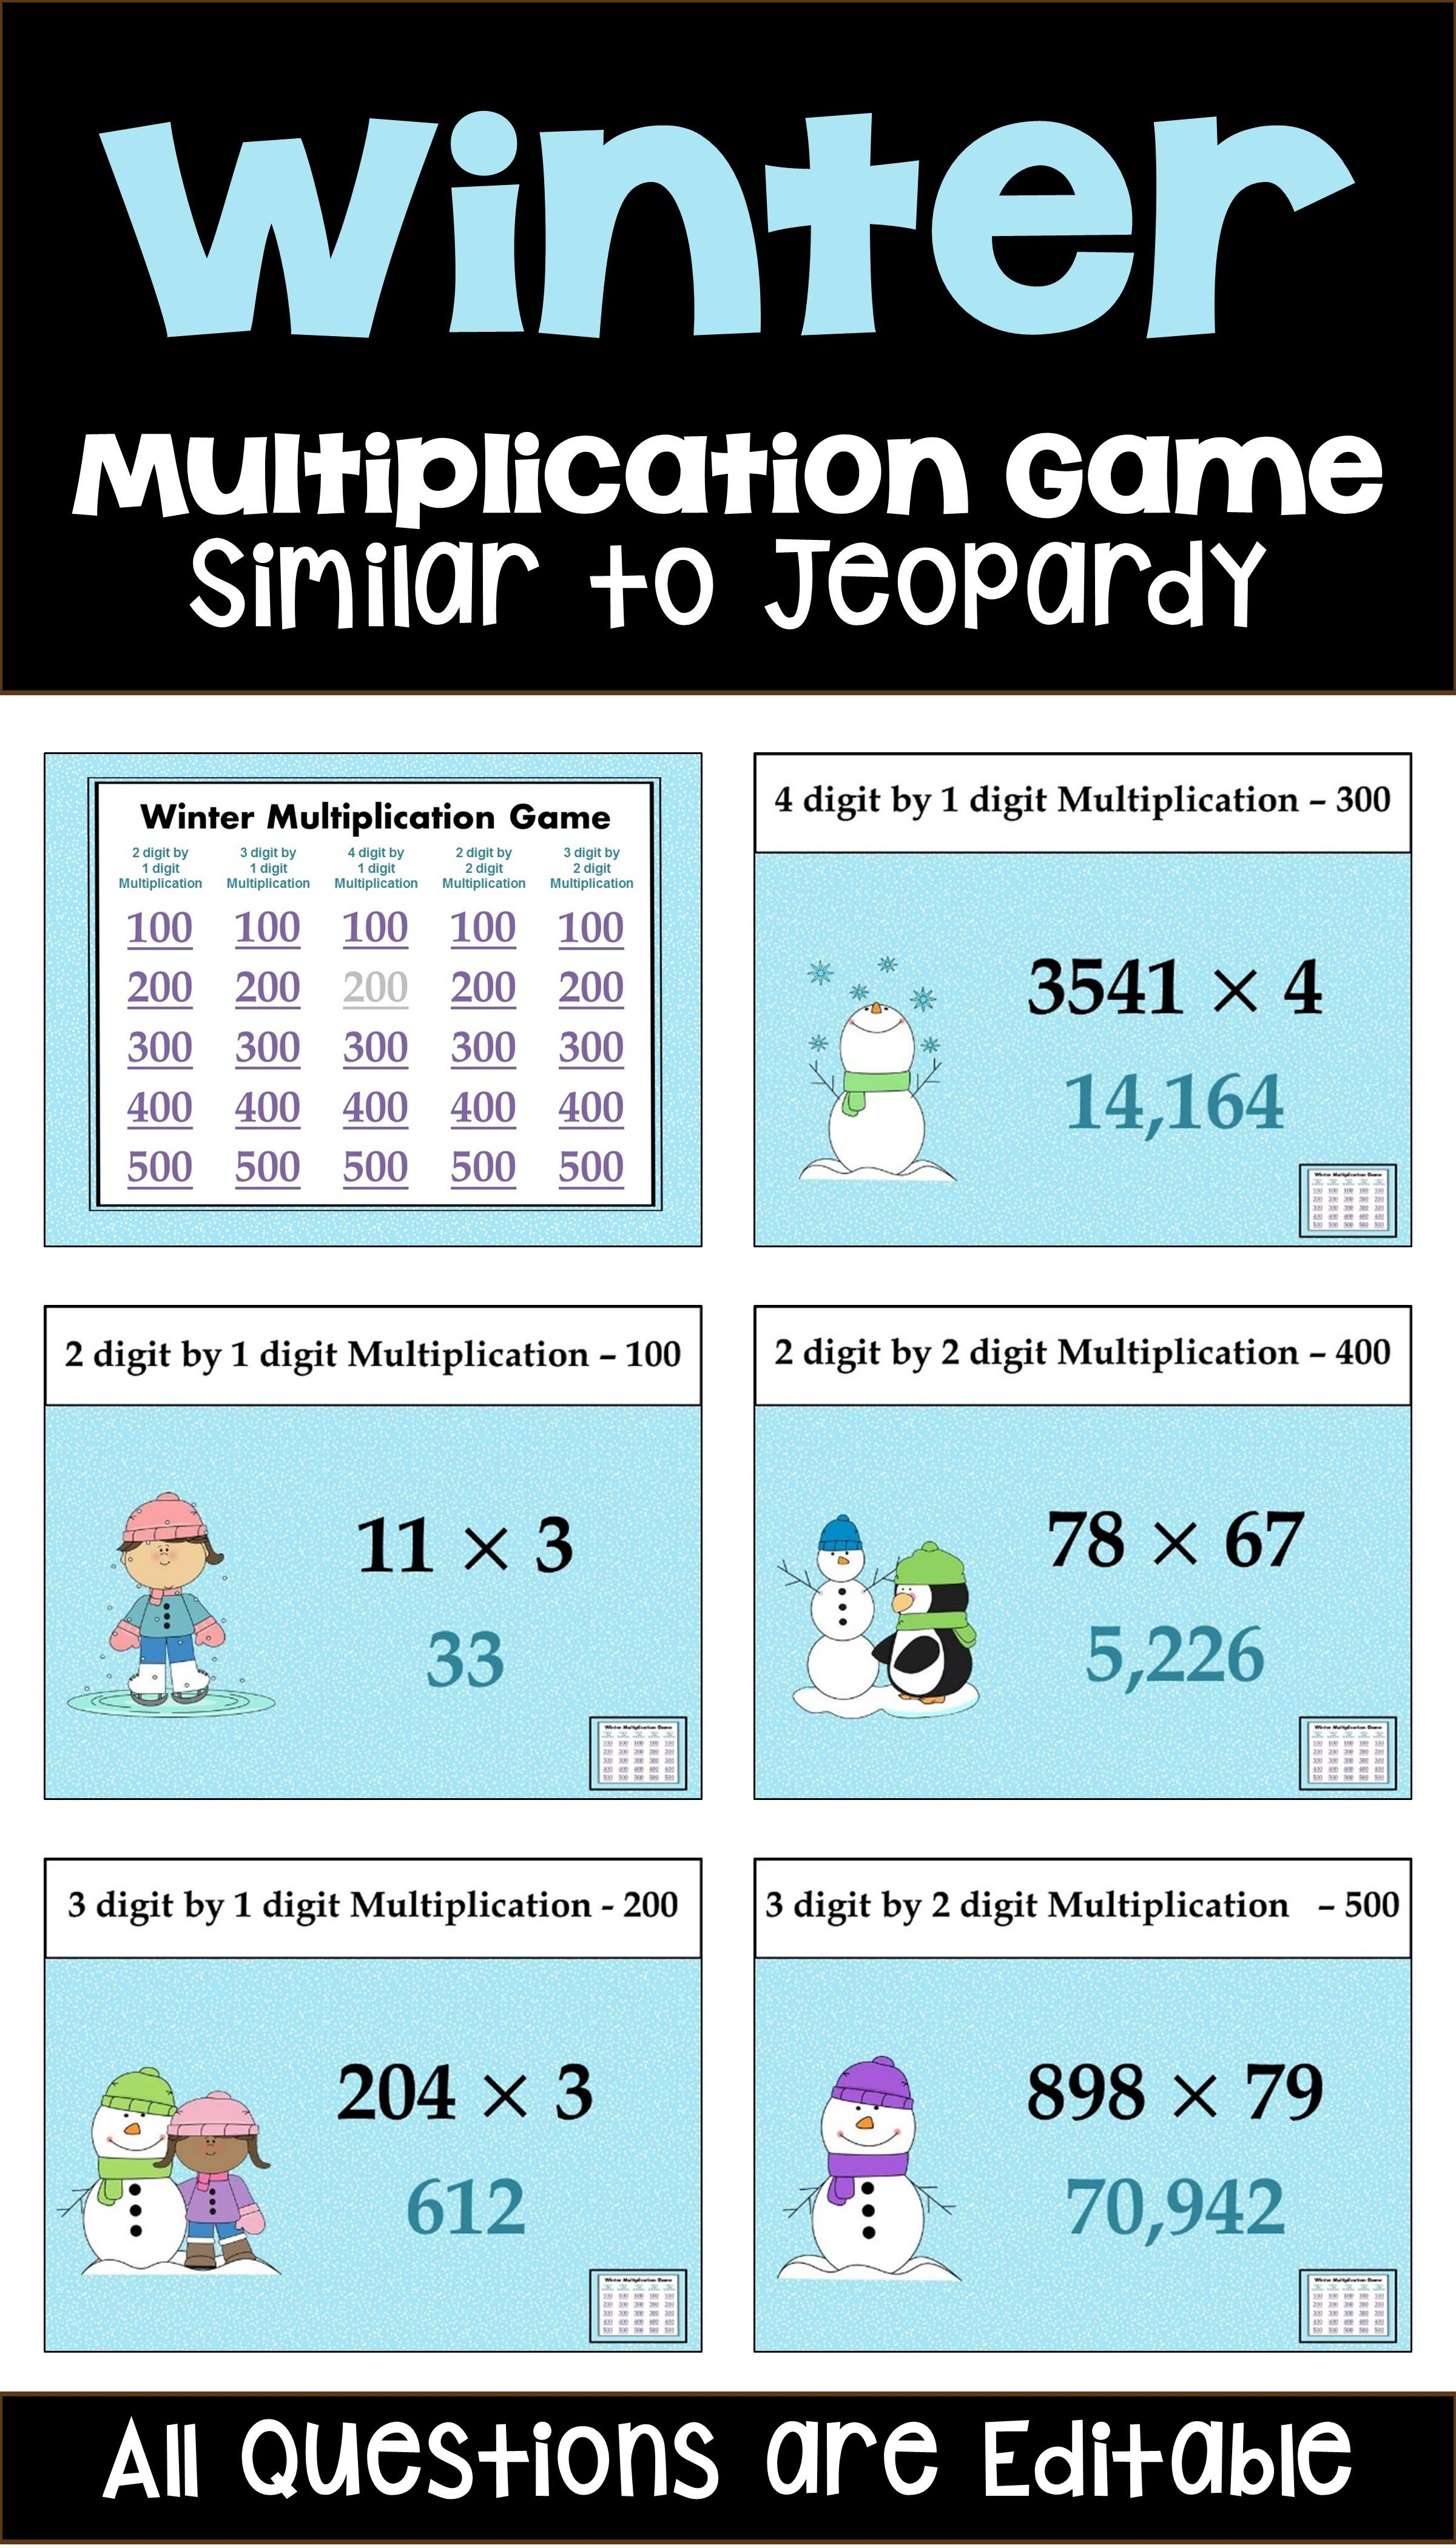 Winter Multiplication Game Similar To Jeopardy